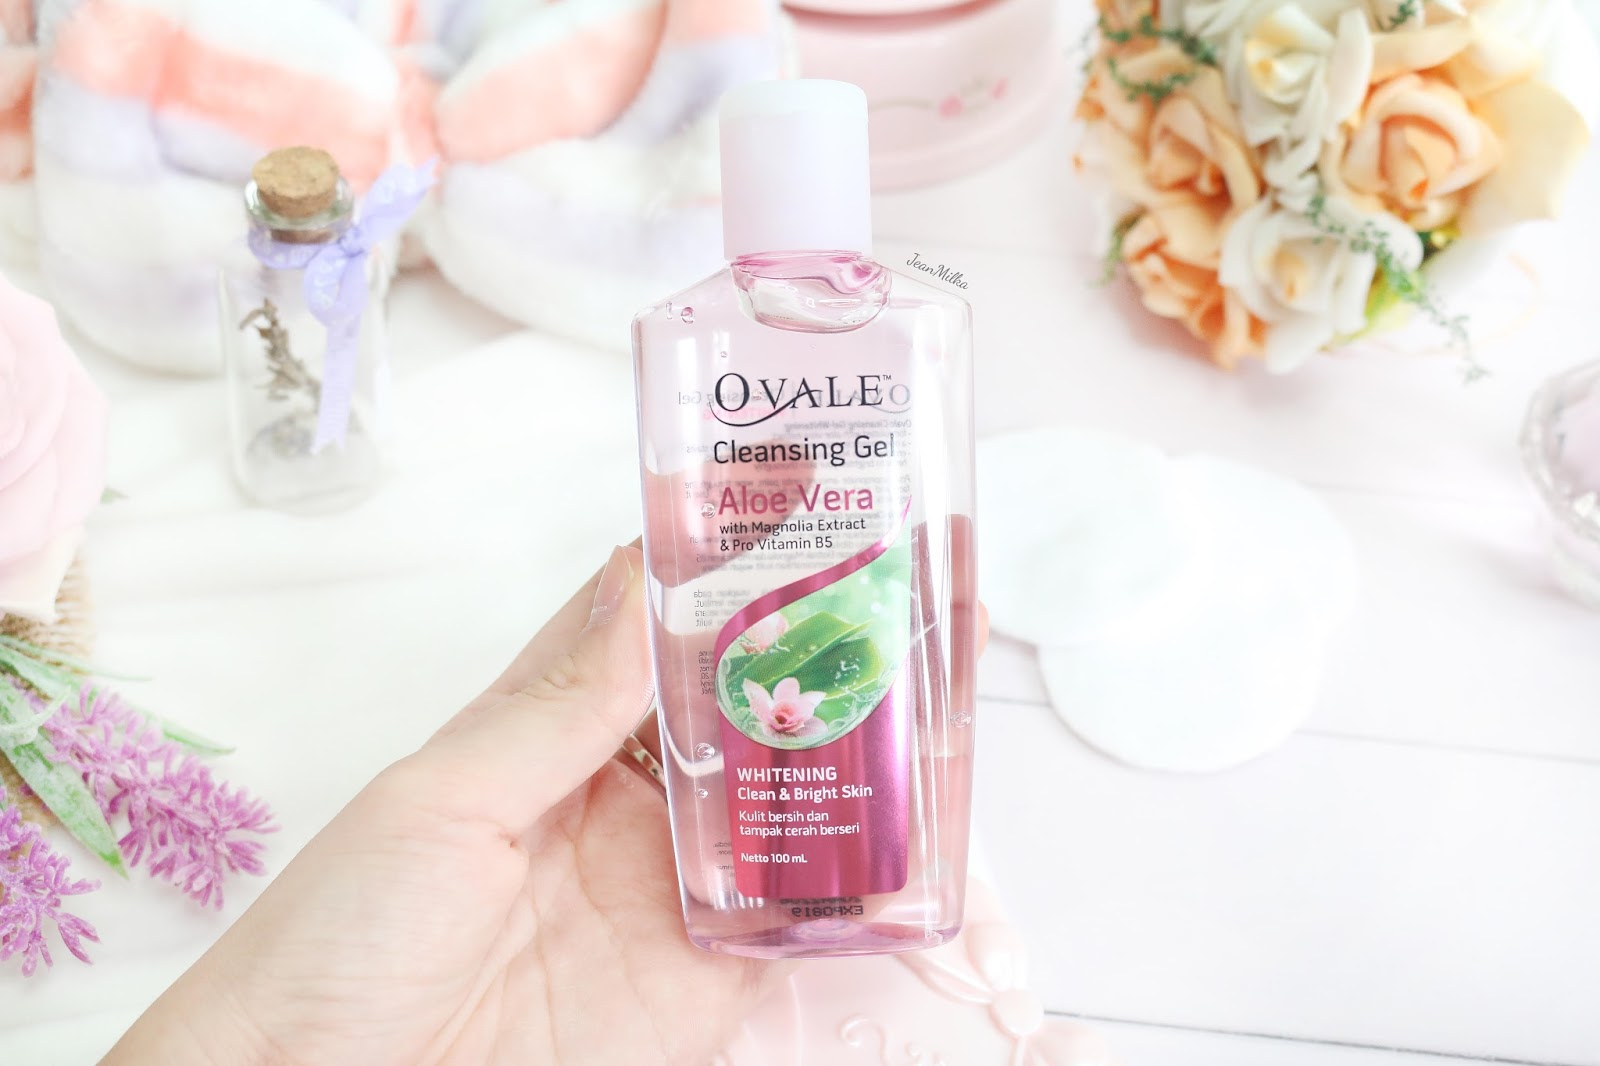 ovale, ovale cleansing gel, review ovale cleansing gel, makeup, makeup remover, skincare, makeup indonesia, kosmetik indonesia, ovale beauty